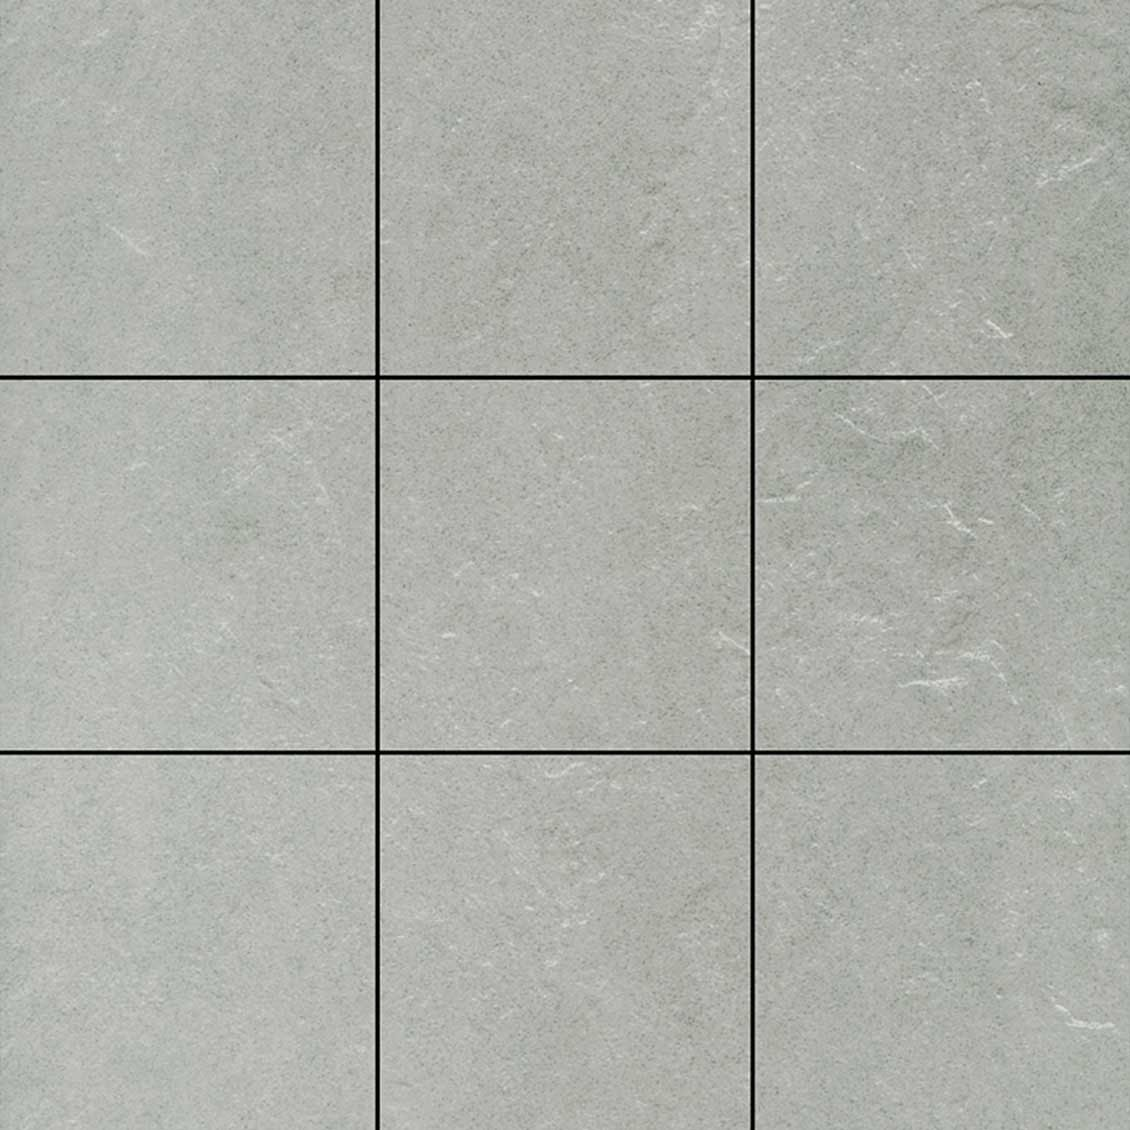 Carrelage design carrelage texture moderne design pour for Carrelage sol cuisine